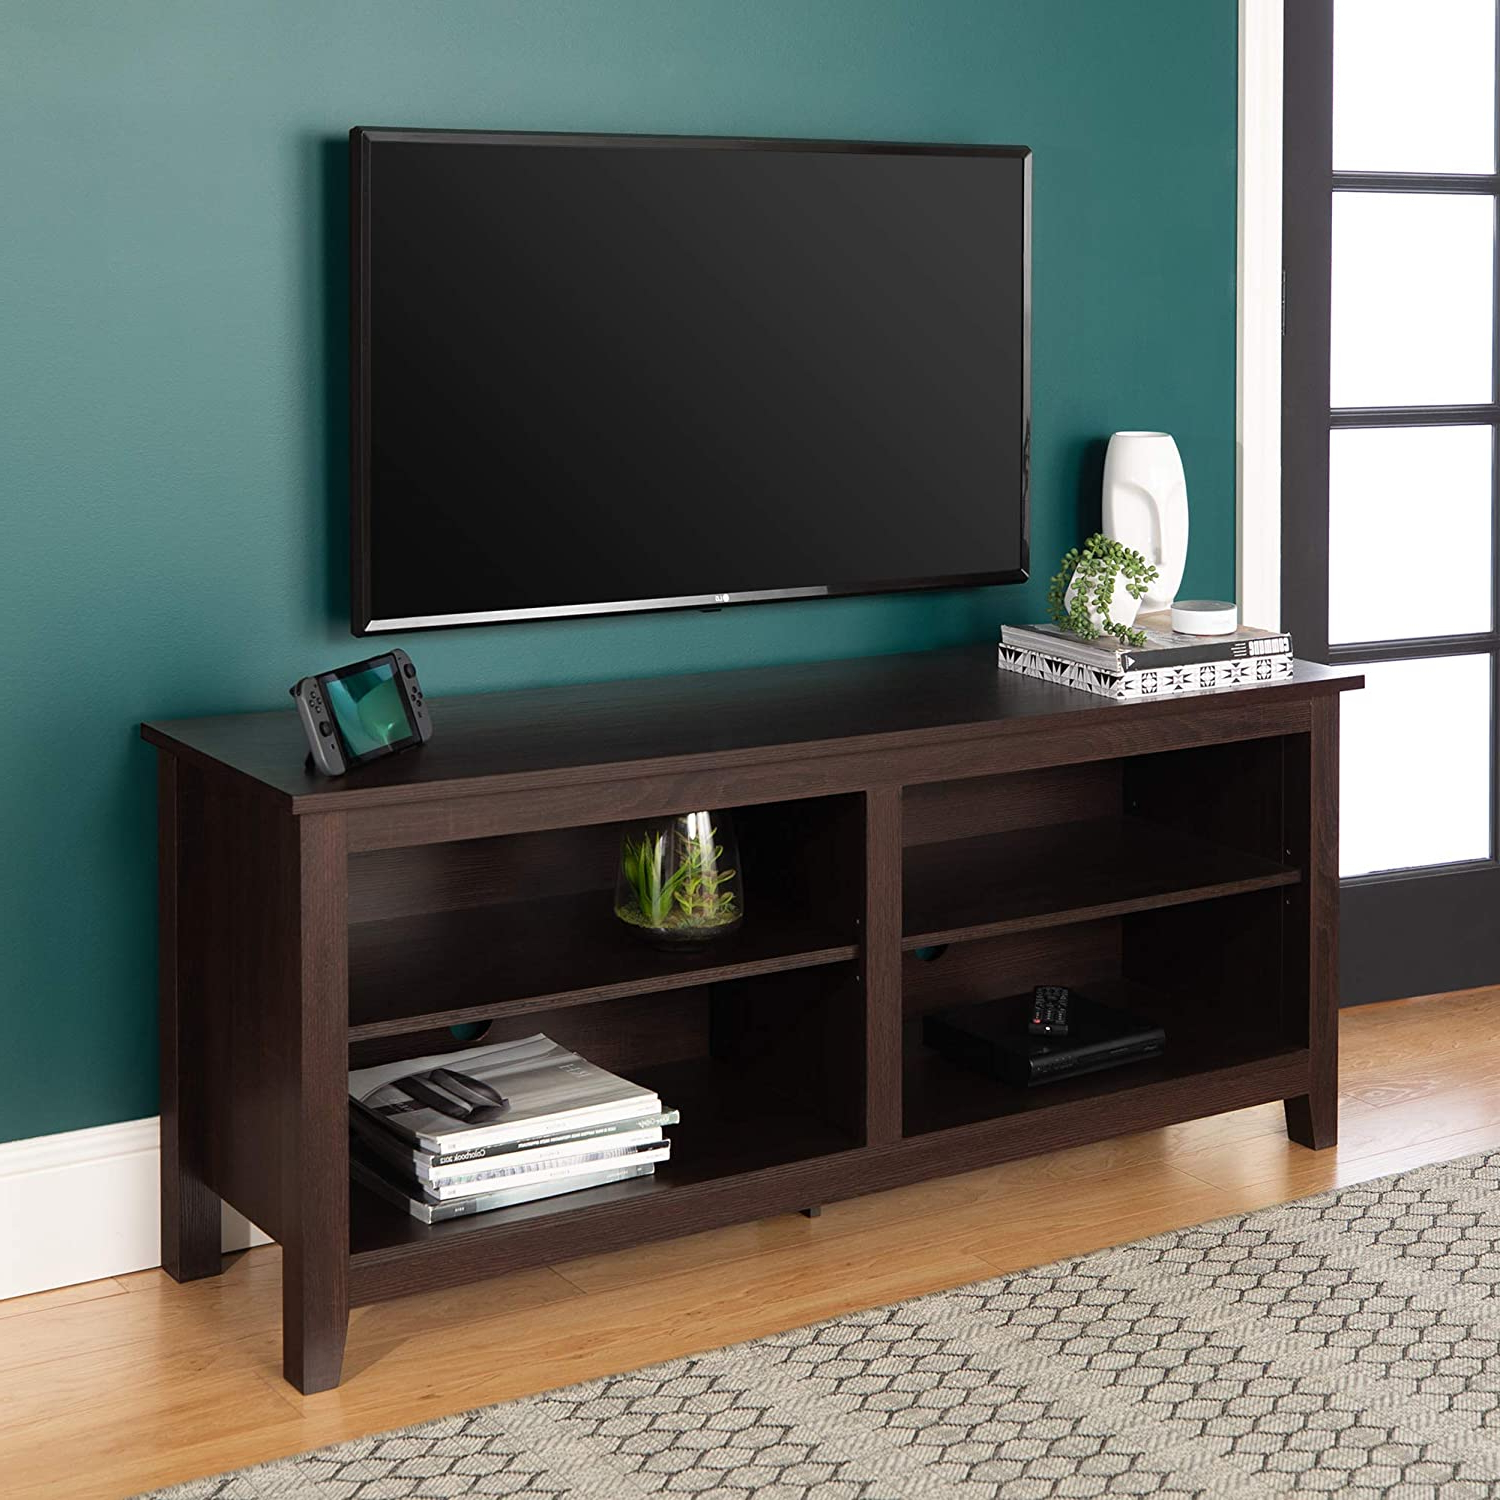 """Preferred Labarbera Tv Stands For Tvs Up To 58"""" Intended For Sekey Home Entertainment Center Wood Media Tv Stand, 58 Inch (View 3 of 20)"""